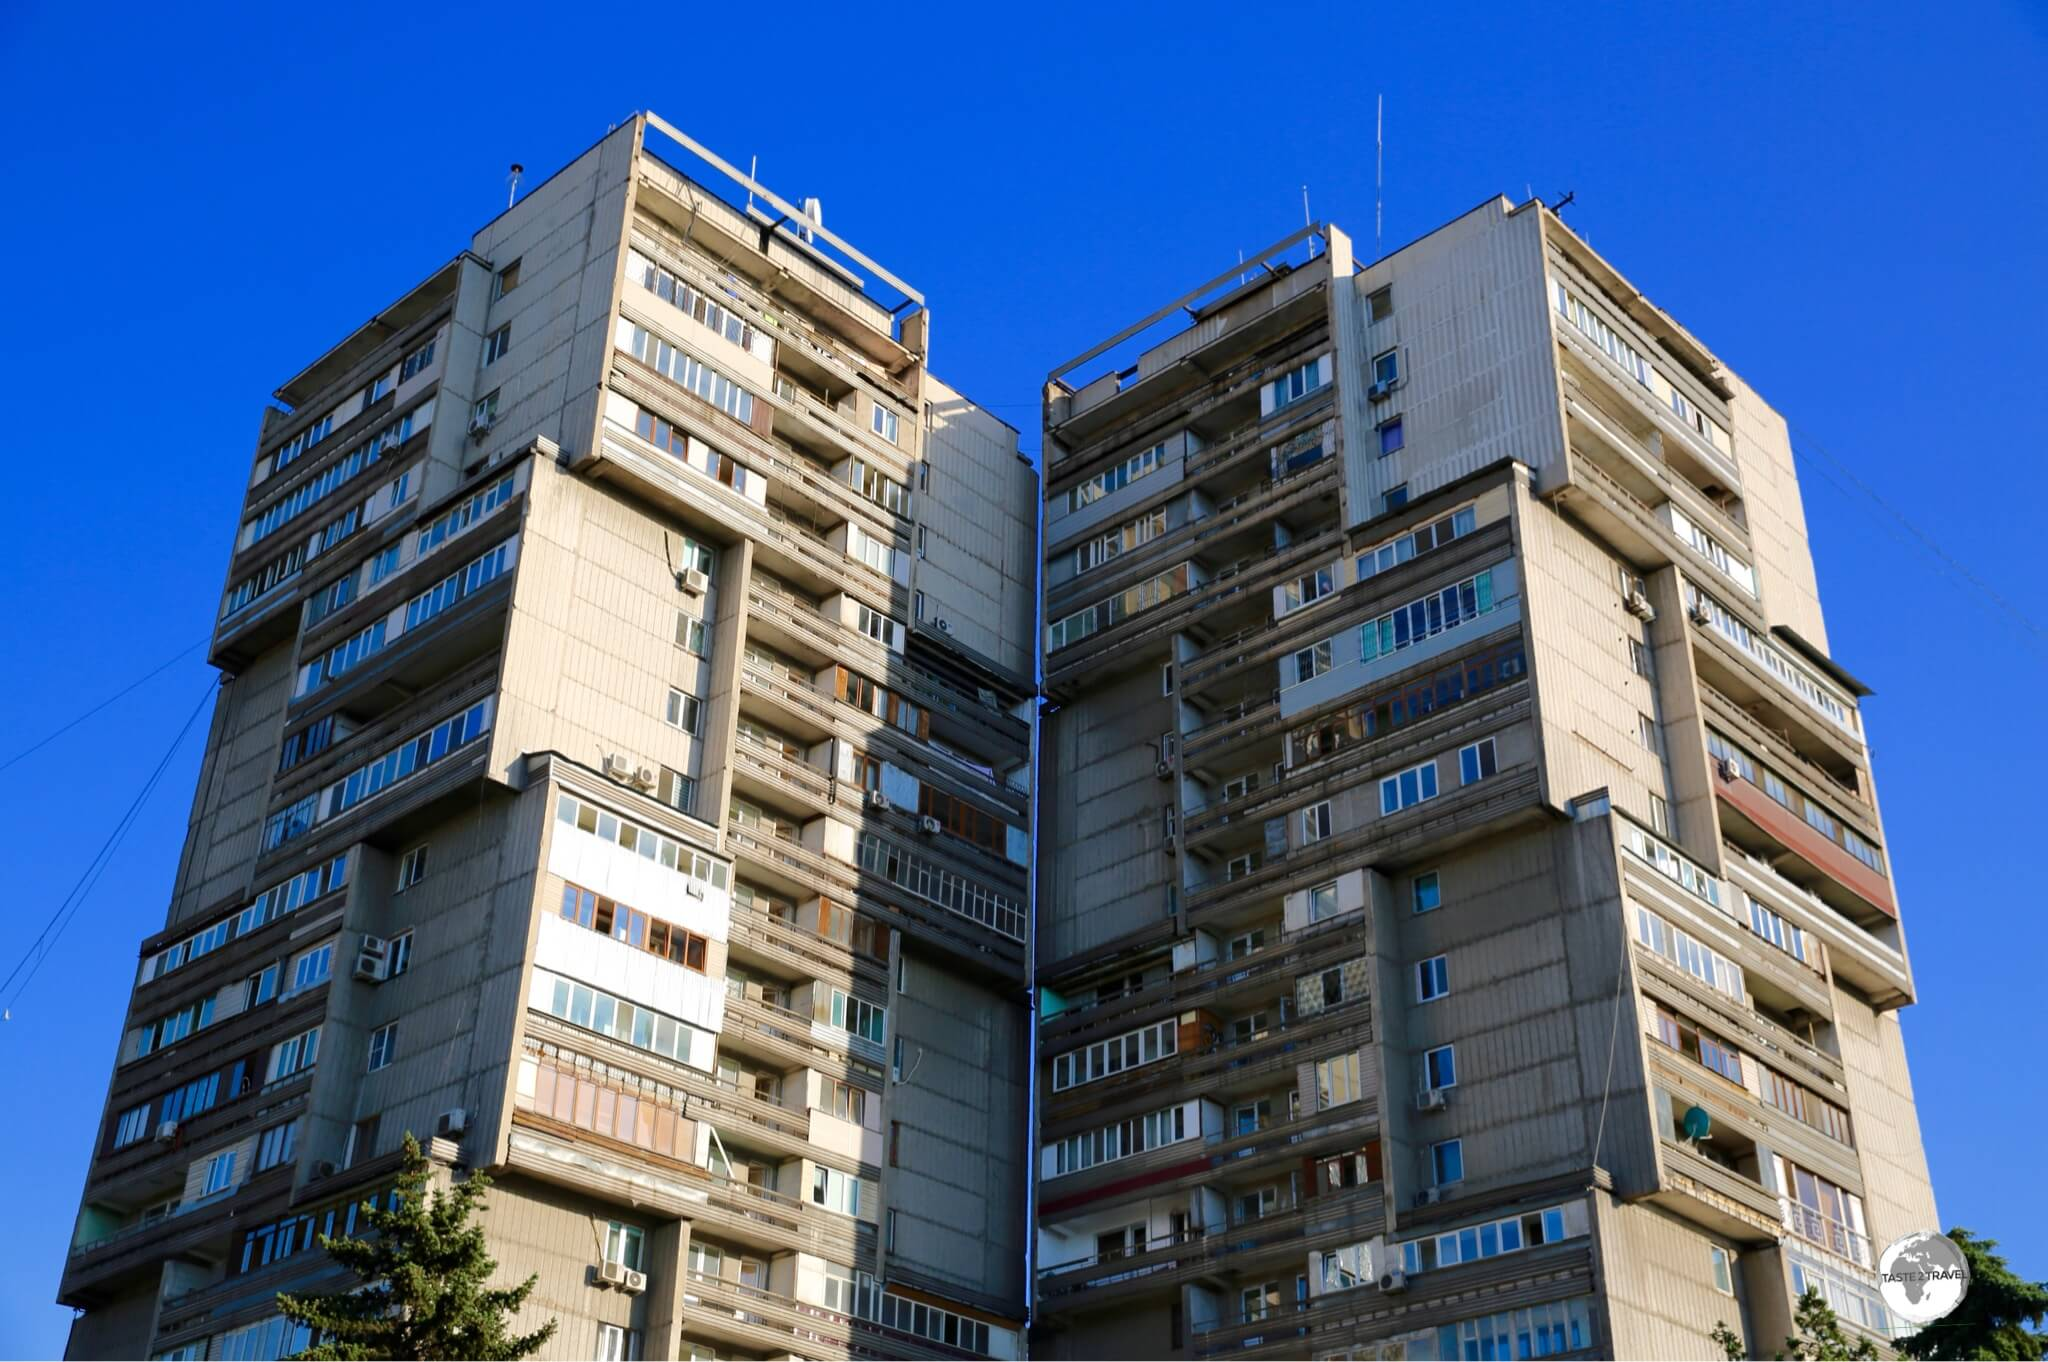 The streets of Almaty are lined with architectural reminders of the city's Soviet past.